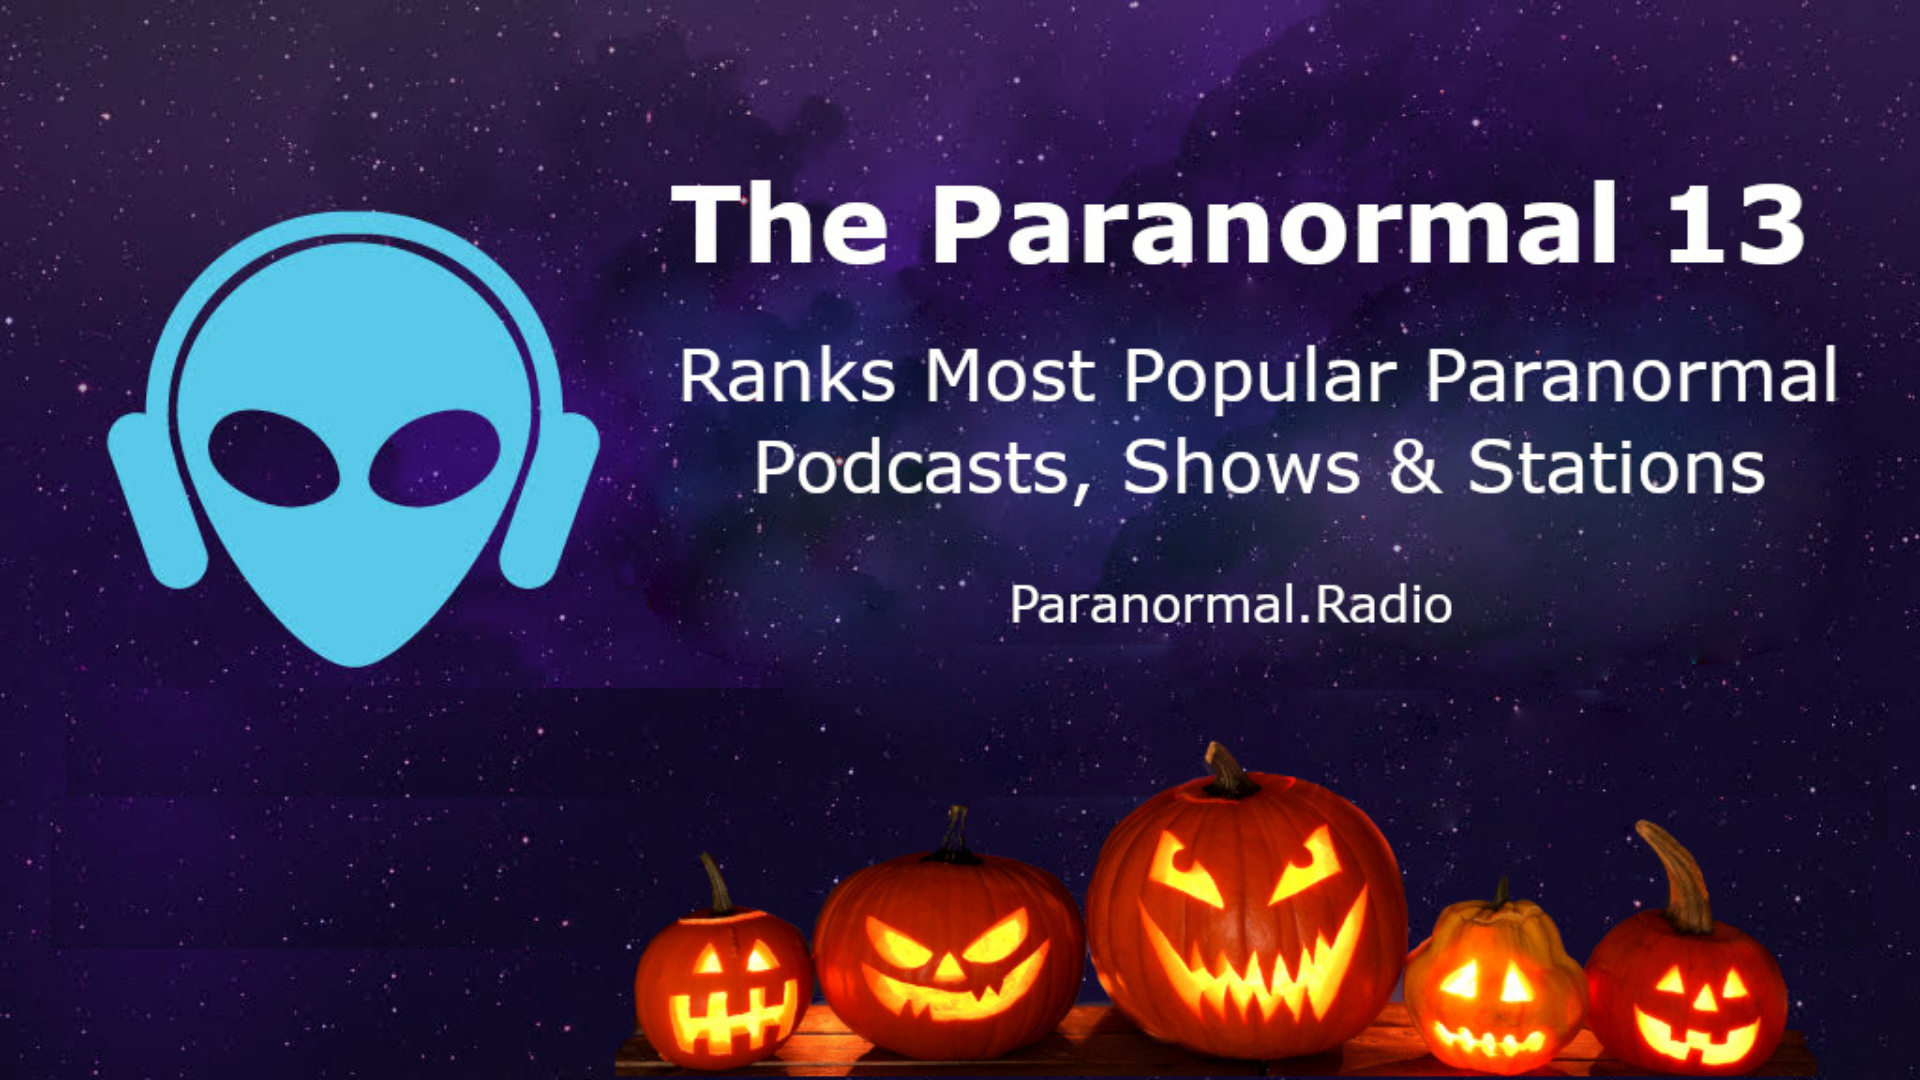 """Thumbnail for 'Paranormal 13' Ranks """"Into The Parabnormal"""" #4 Show, #5 Podcast"""